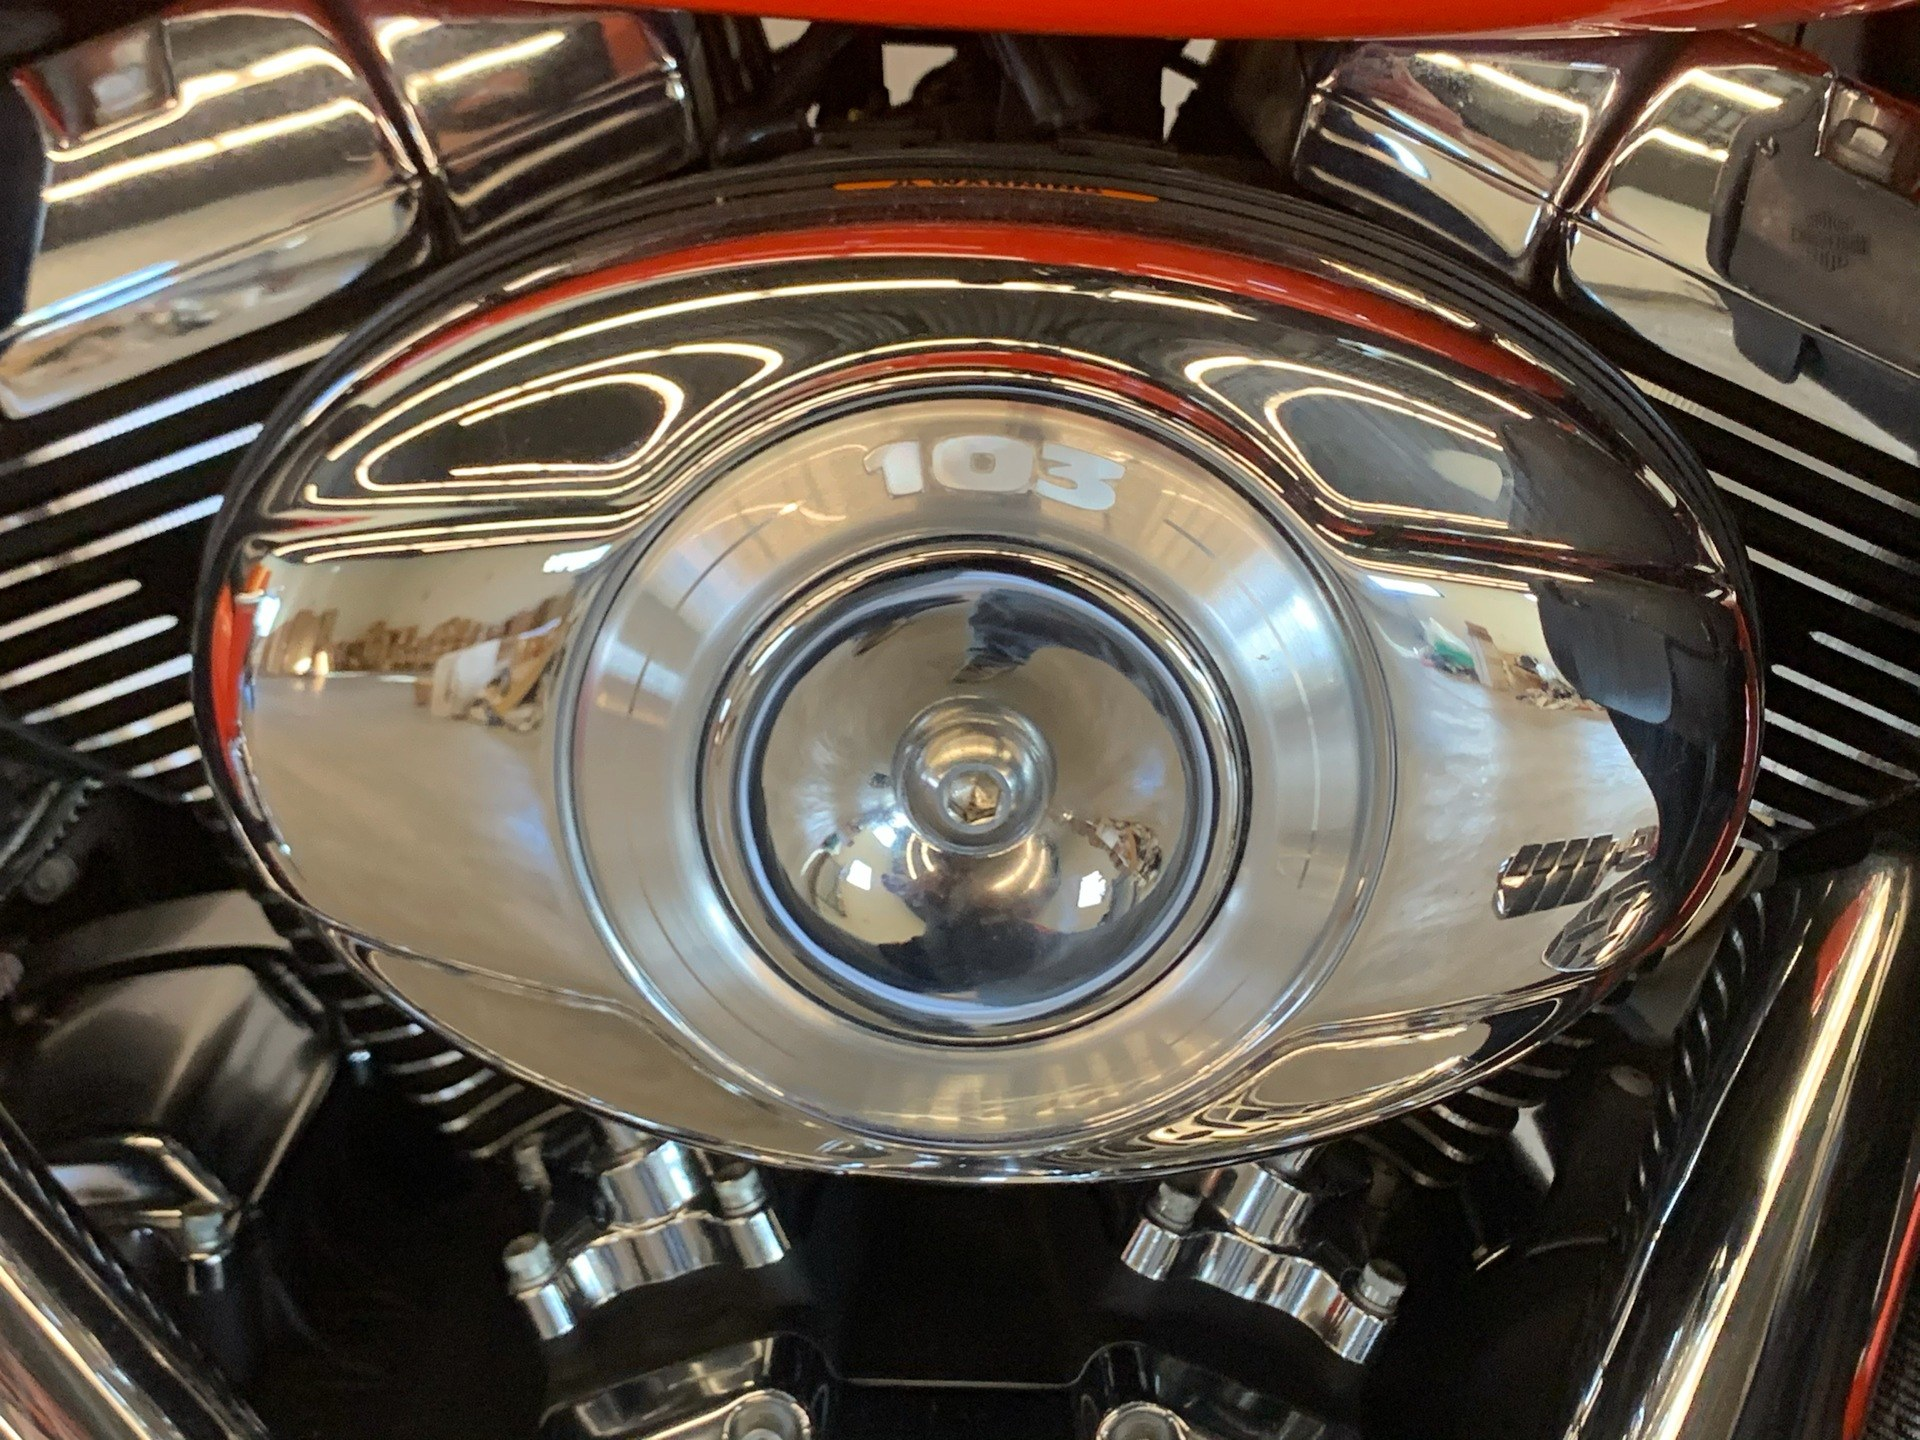 2012 Harley-Davidson Electra Glide® Ultra Limited in Flint, Michigan - Photo 9